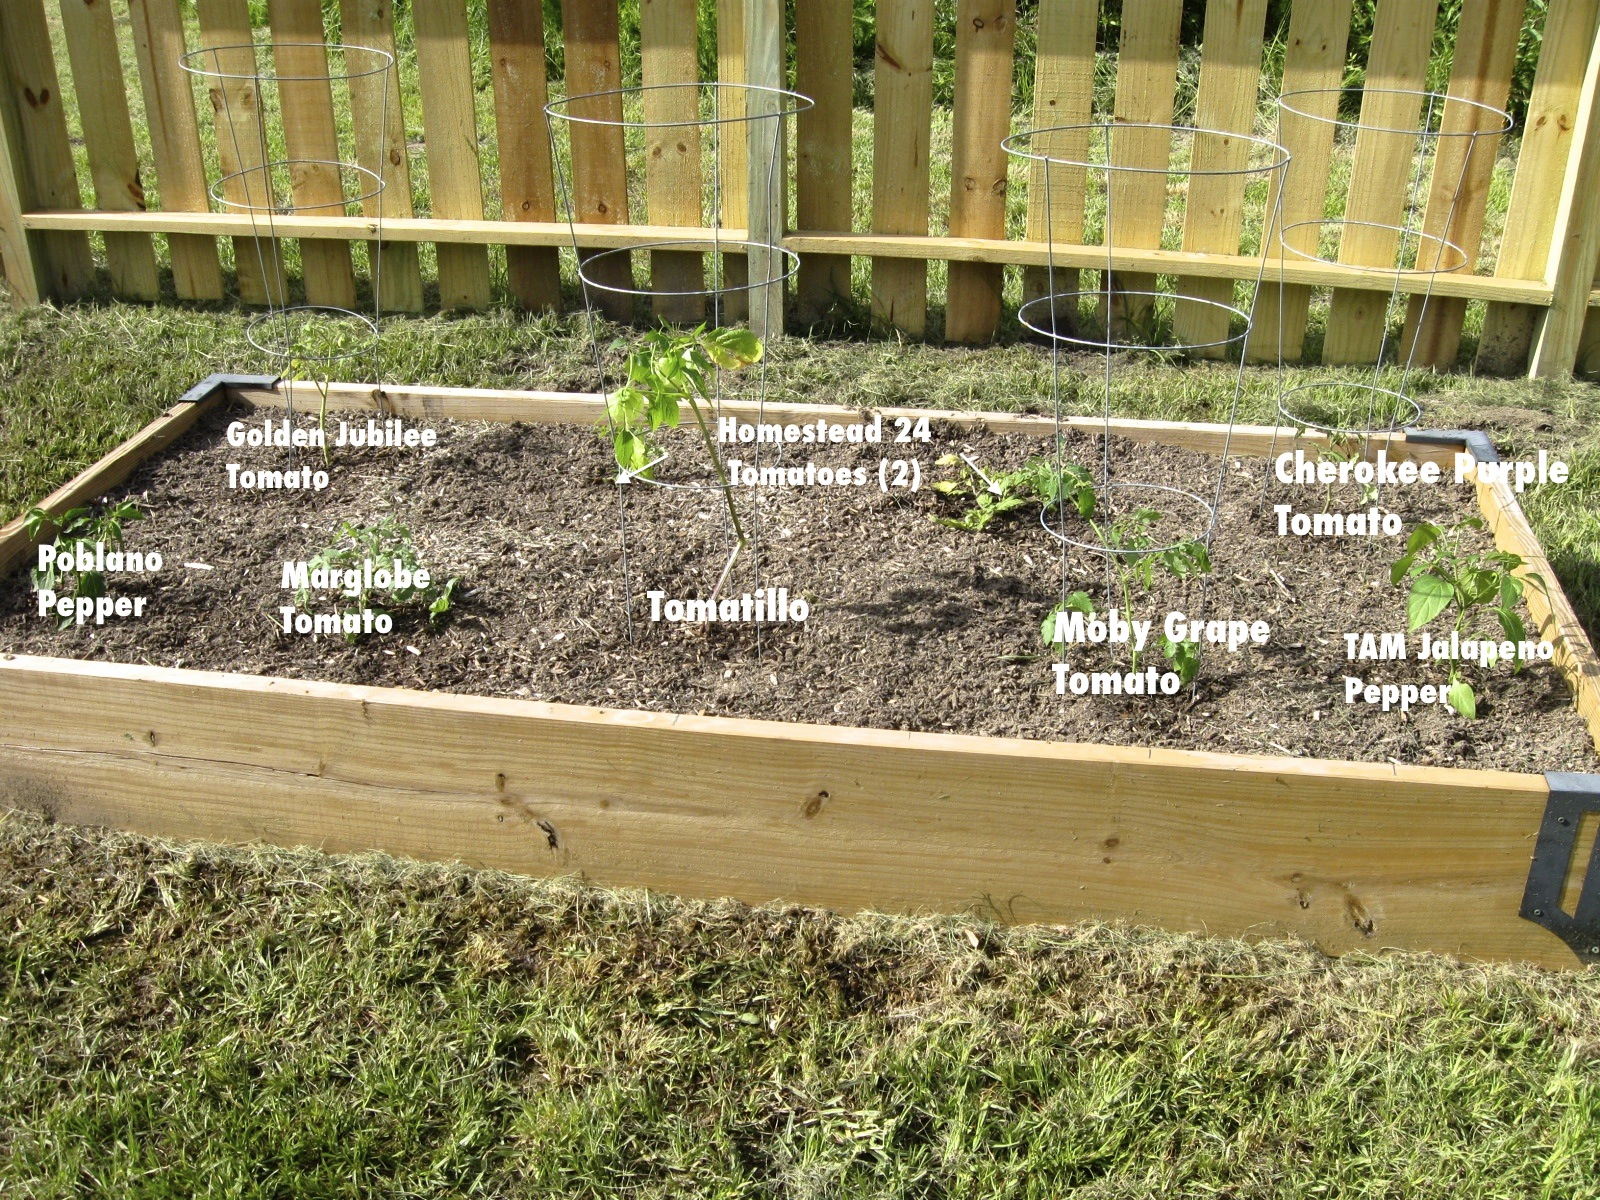 Two Men and a Little Farm RAISED BEDS LET THE GARDENING BEGIN